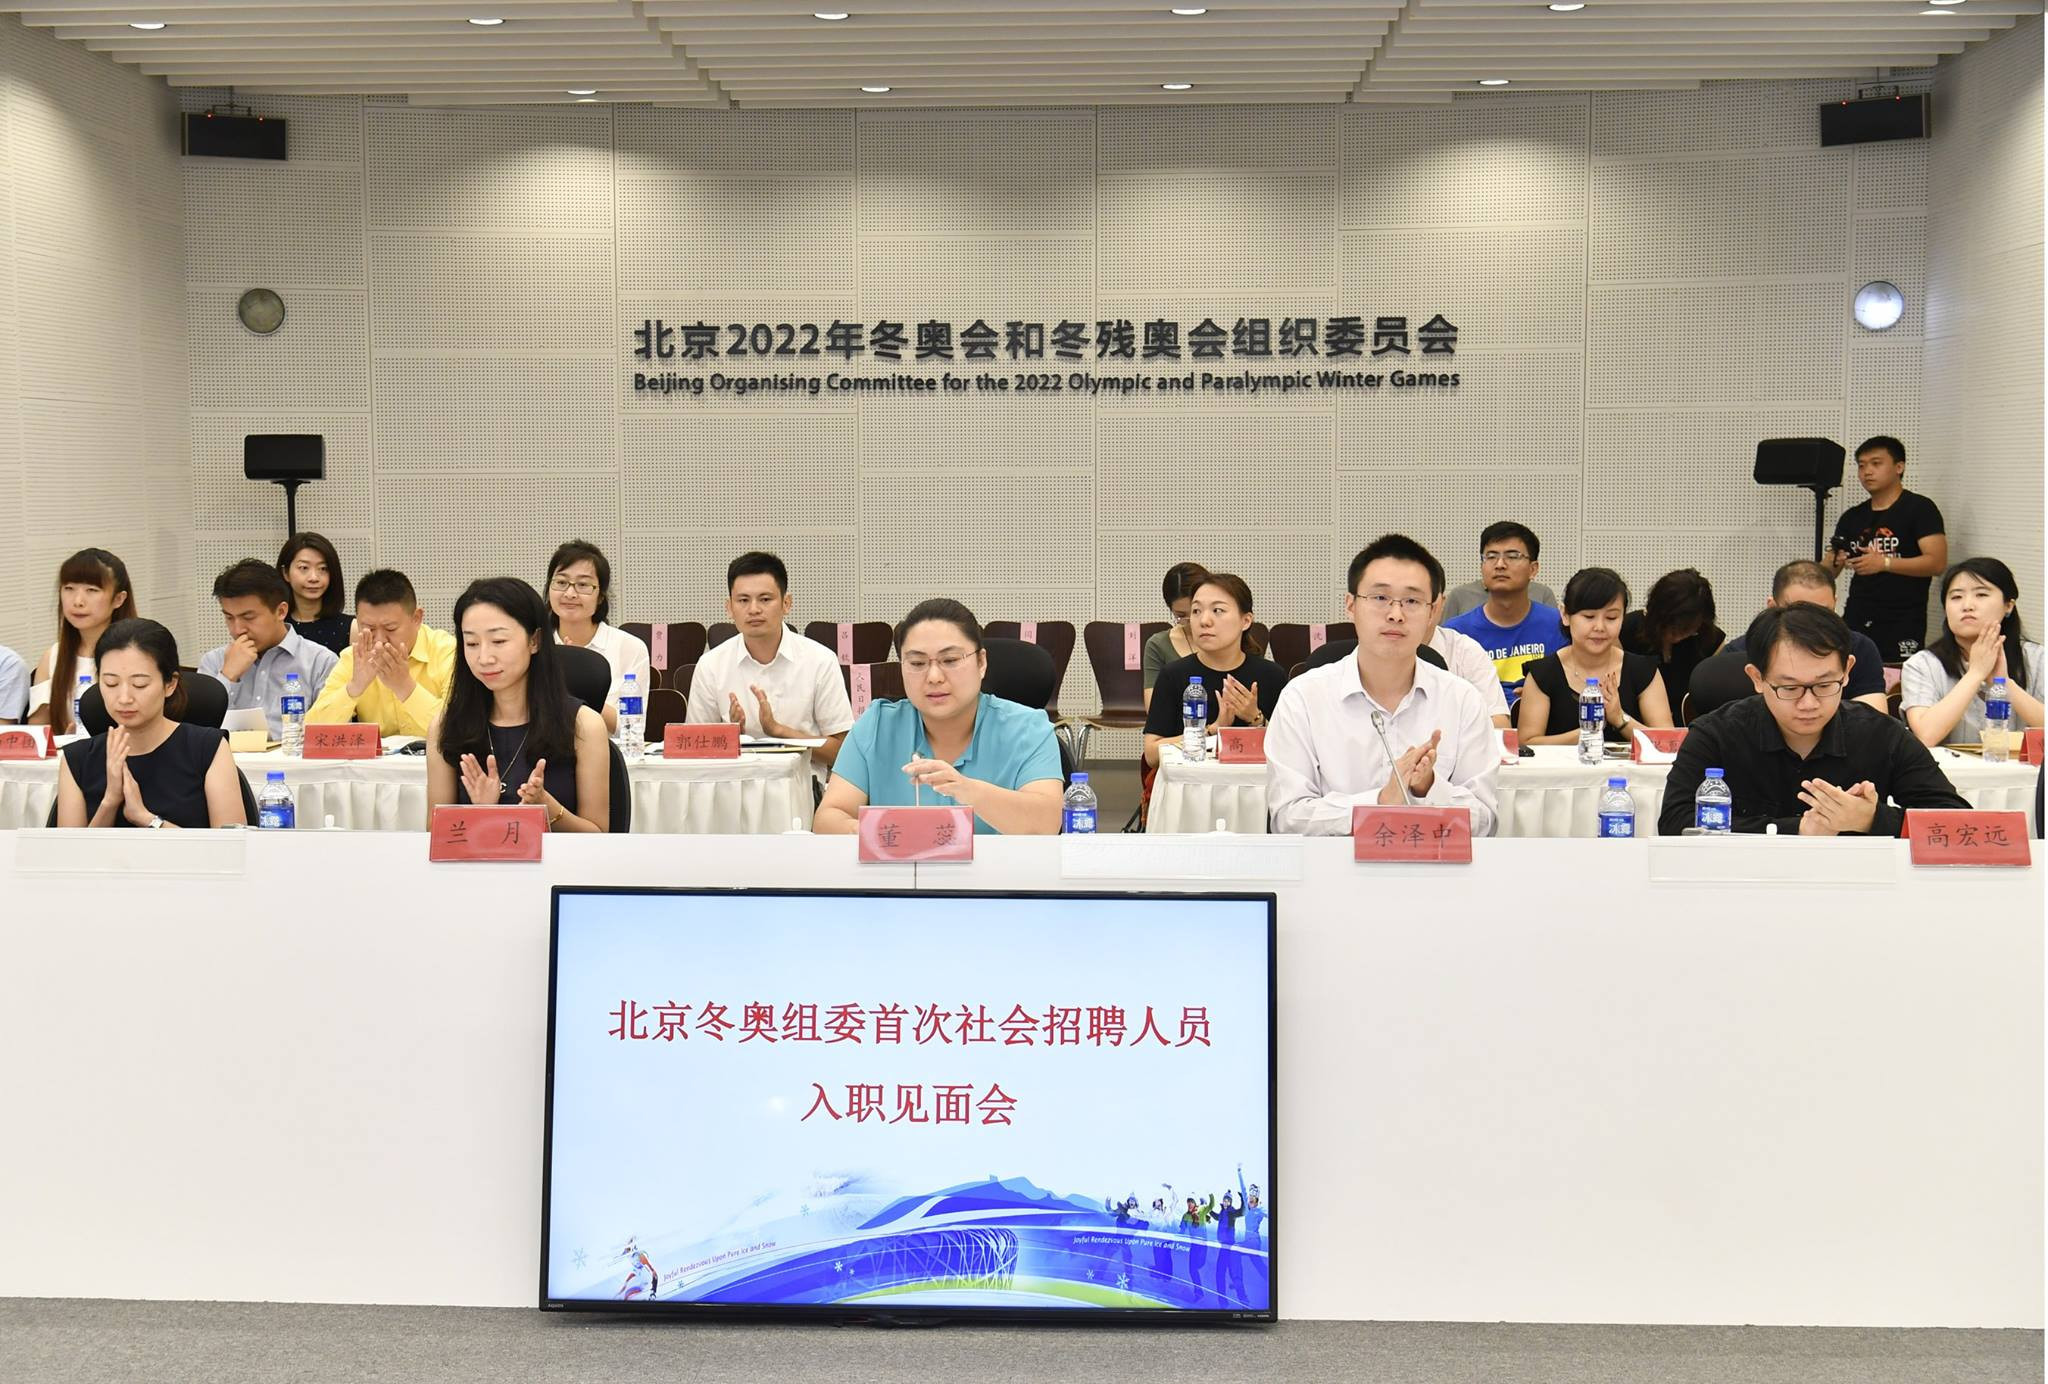 Staff from Beijing 2022 will work alongside Korean colleagues at Pyeongchang 2018 to gain experience of the Winter Olympic and Paralympic Games ©Beijing 2022